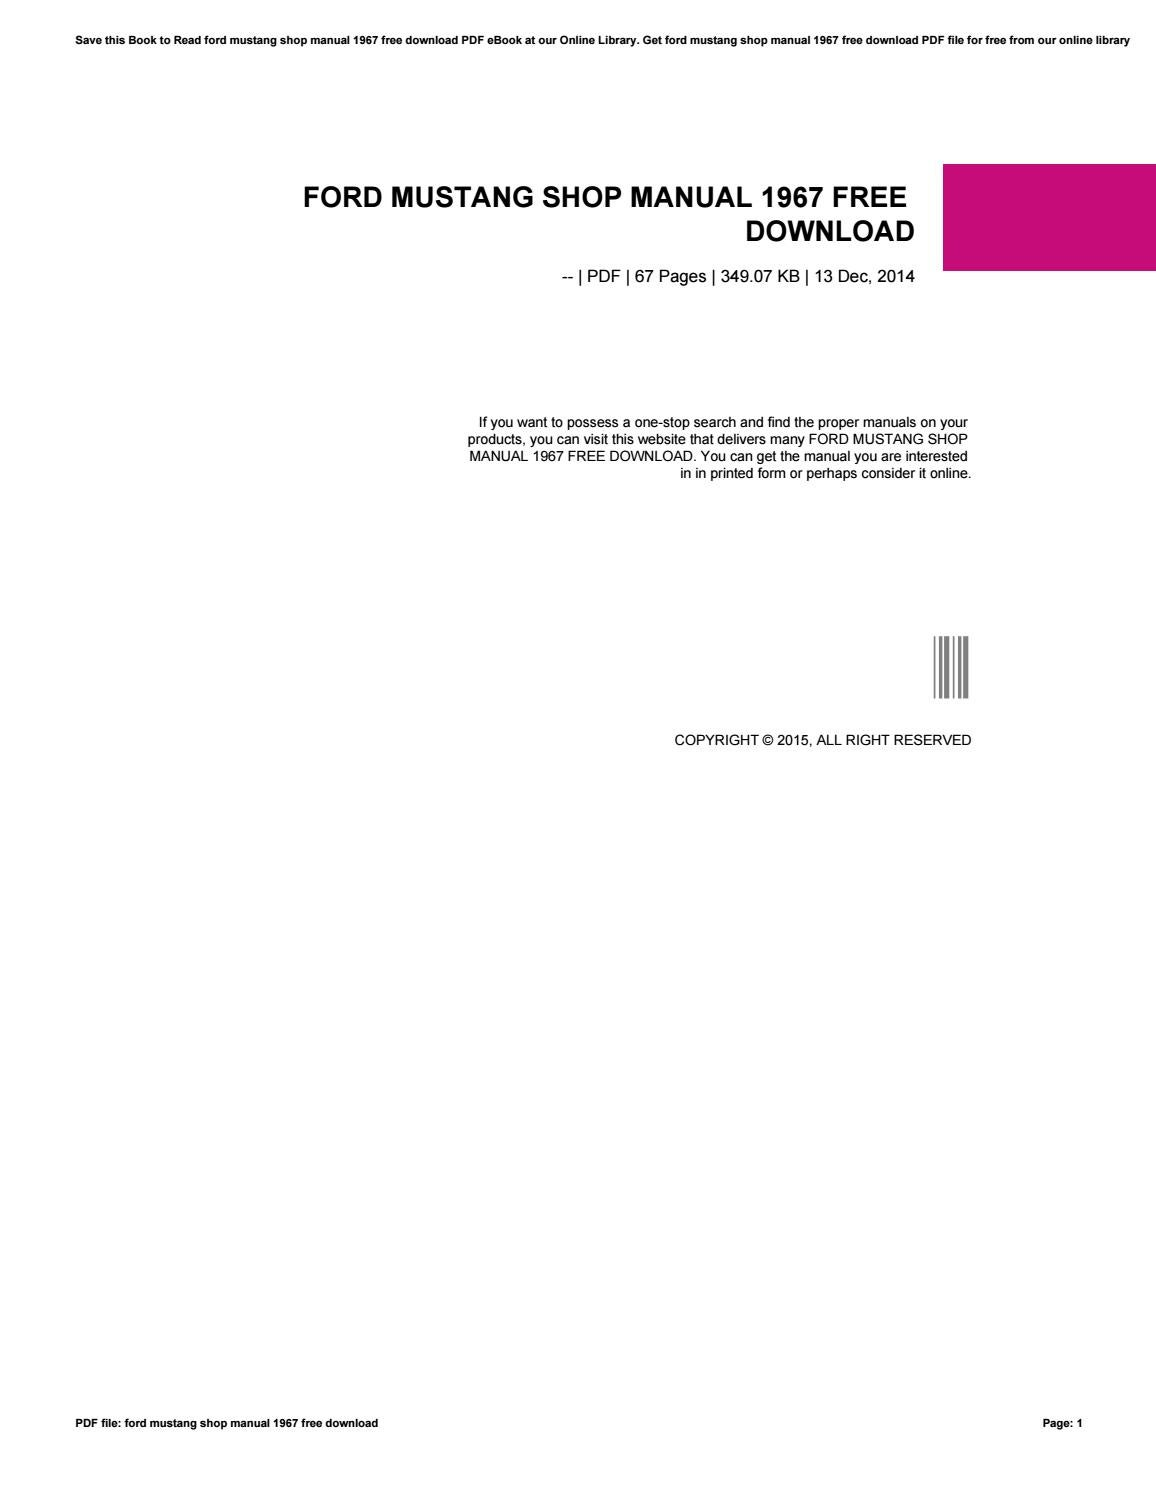 ... Array - ford mustang shop manual 1967 free download by e mailbox37  issuu rh issuu ...